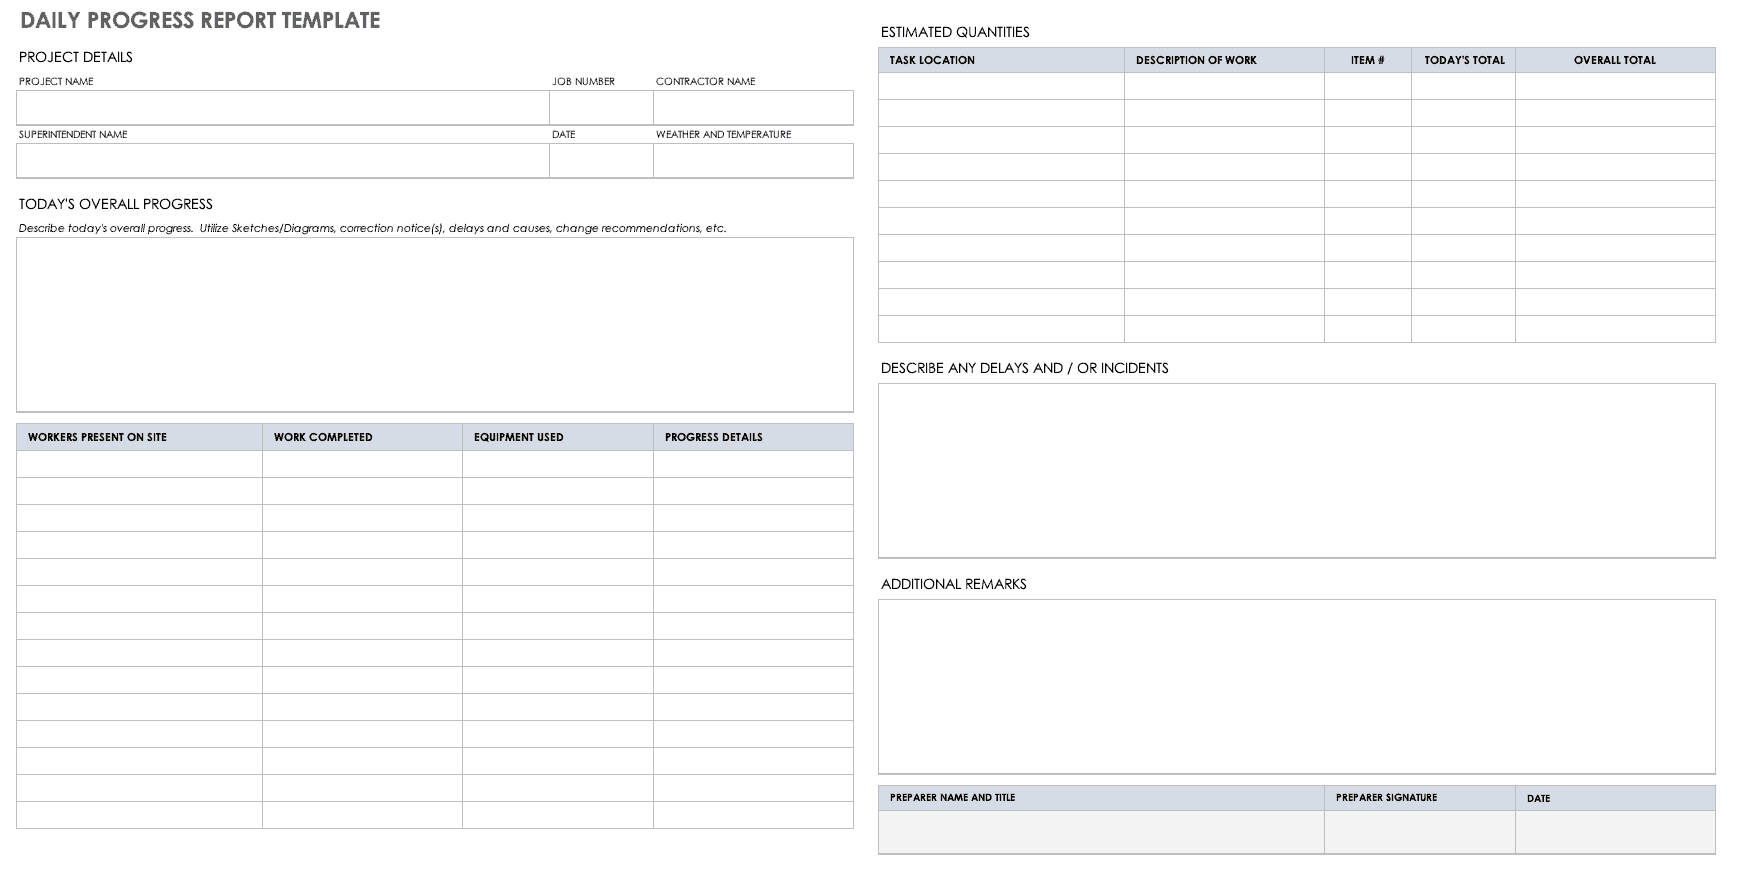 Free Project Report Templates | Smartsheet With Project Daily Status Report Template